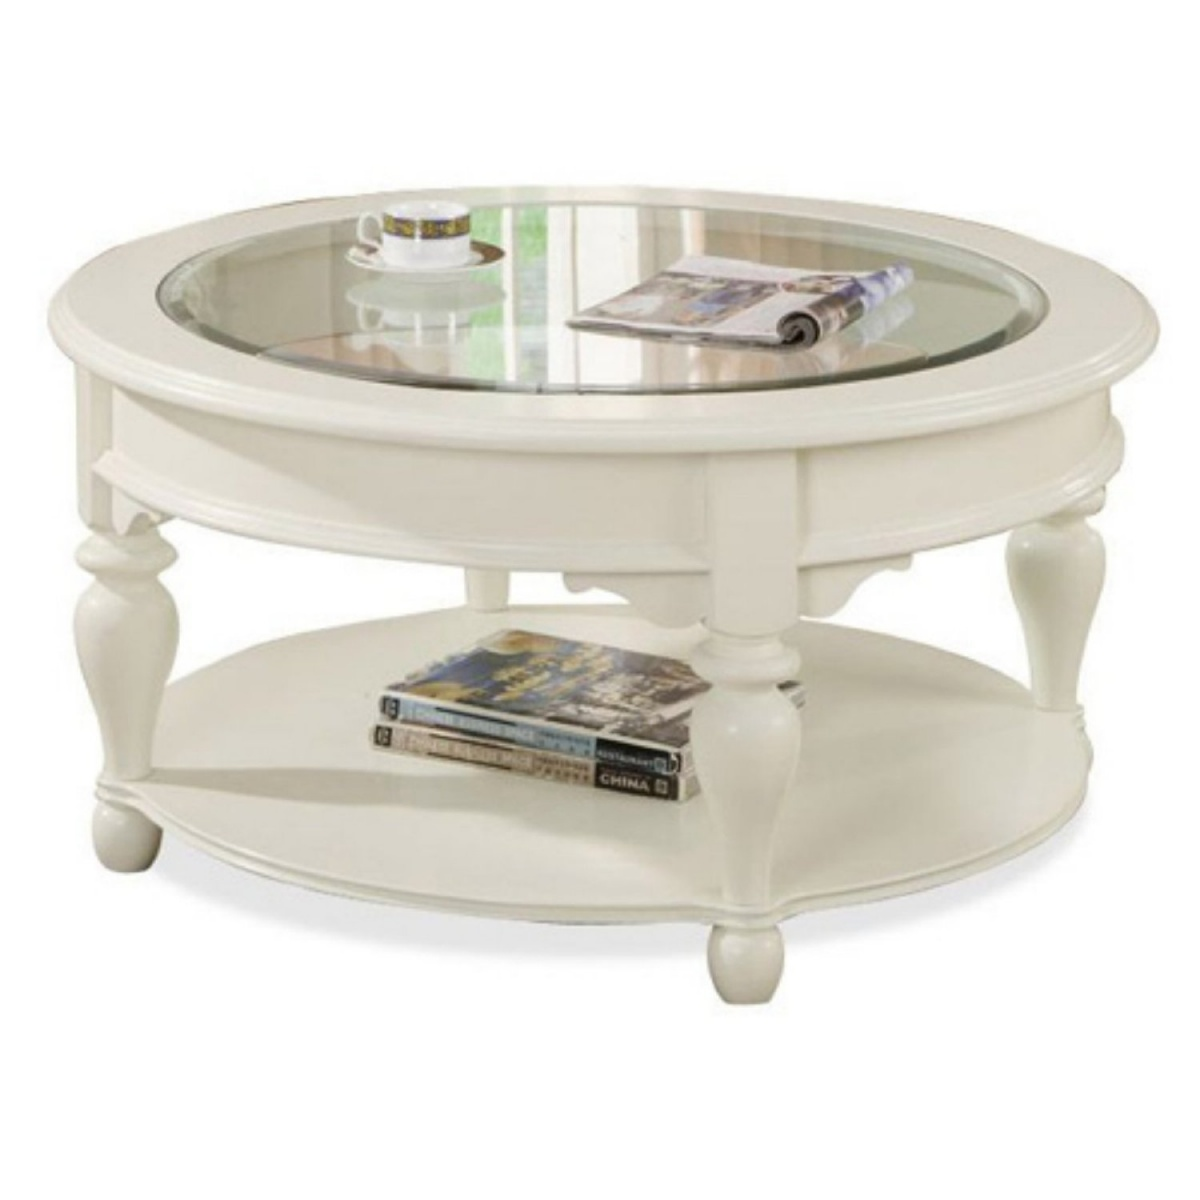 round white coffee table designs spanishorientation marvelous accent tables ikea coolest modern glass top butterfly leaf sofa with baskets kids plastic nic piece wood set coastal